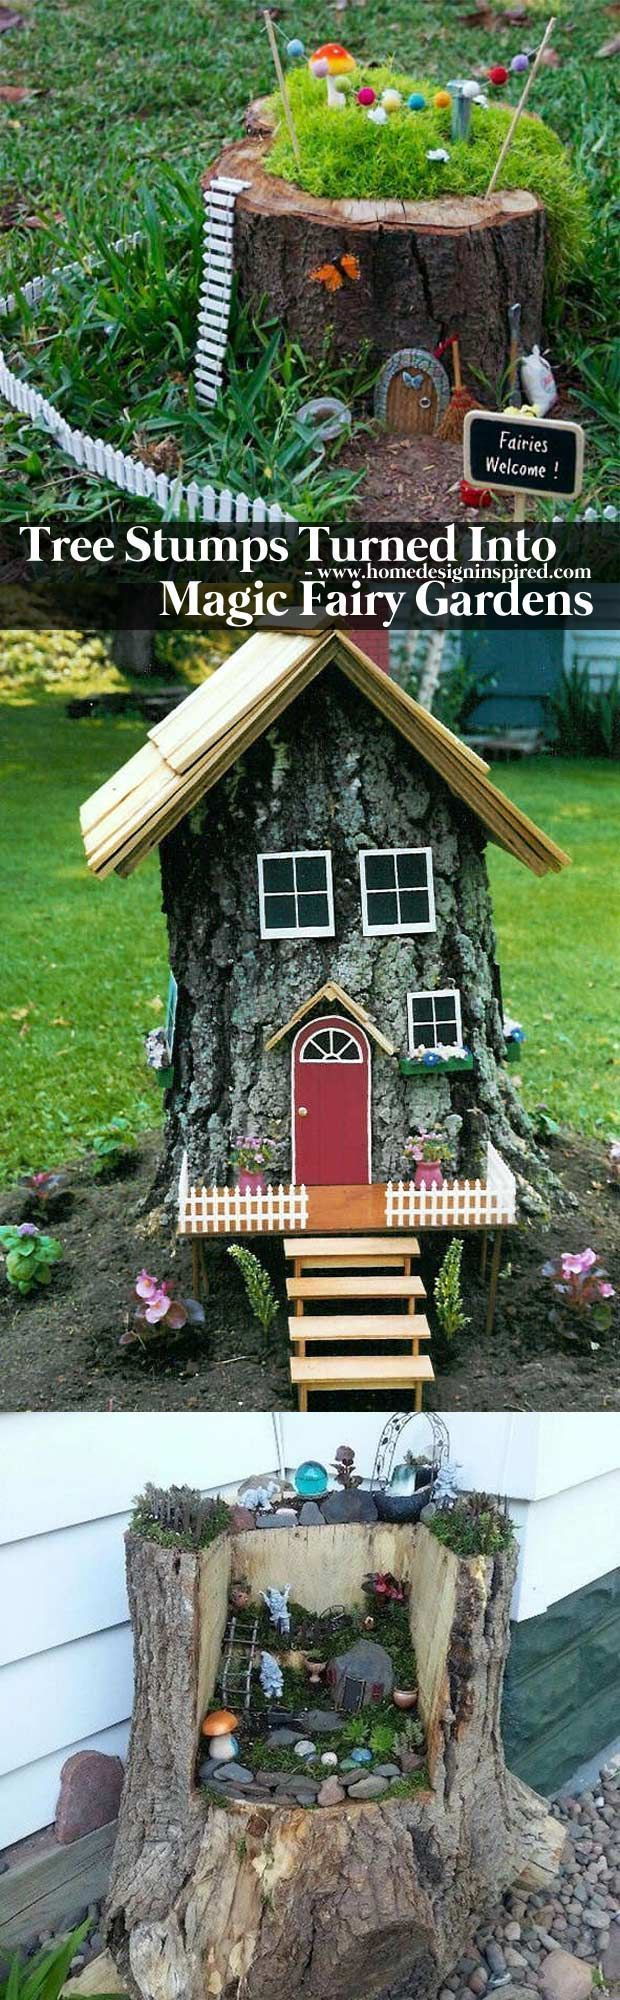 Tree stumps turned into magic fairy houses - 17 Stunning Fairy Gardens Created by Recycled Things #miniaturefairygardens #minigardens